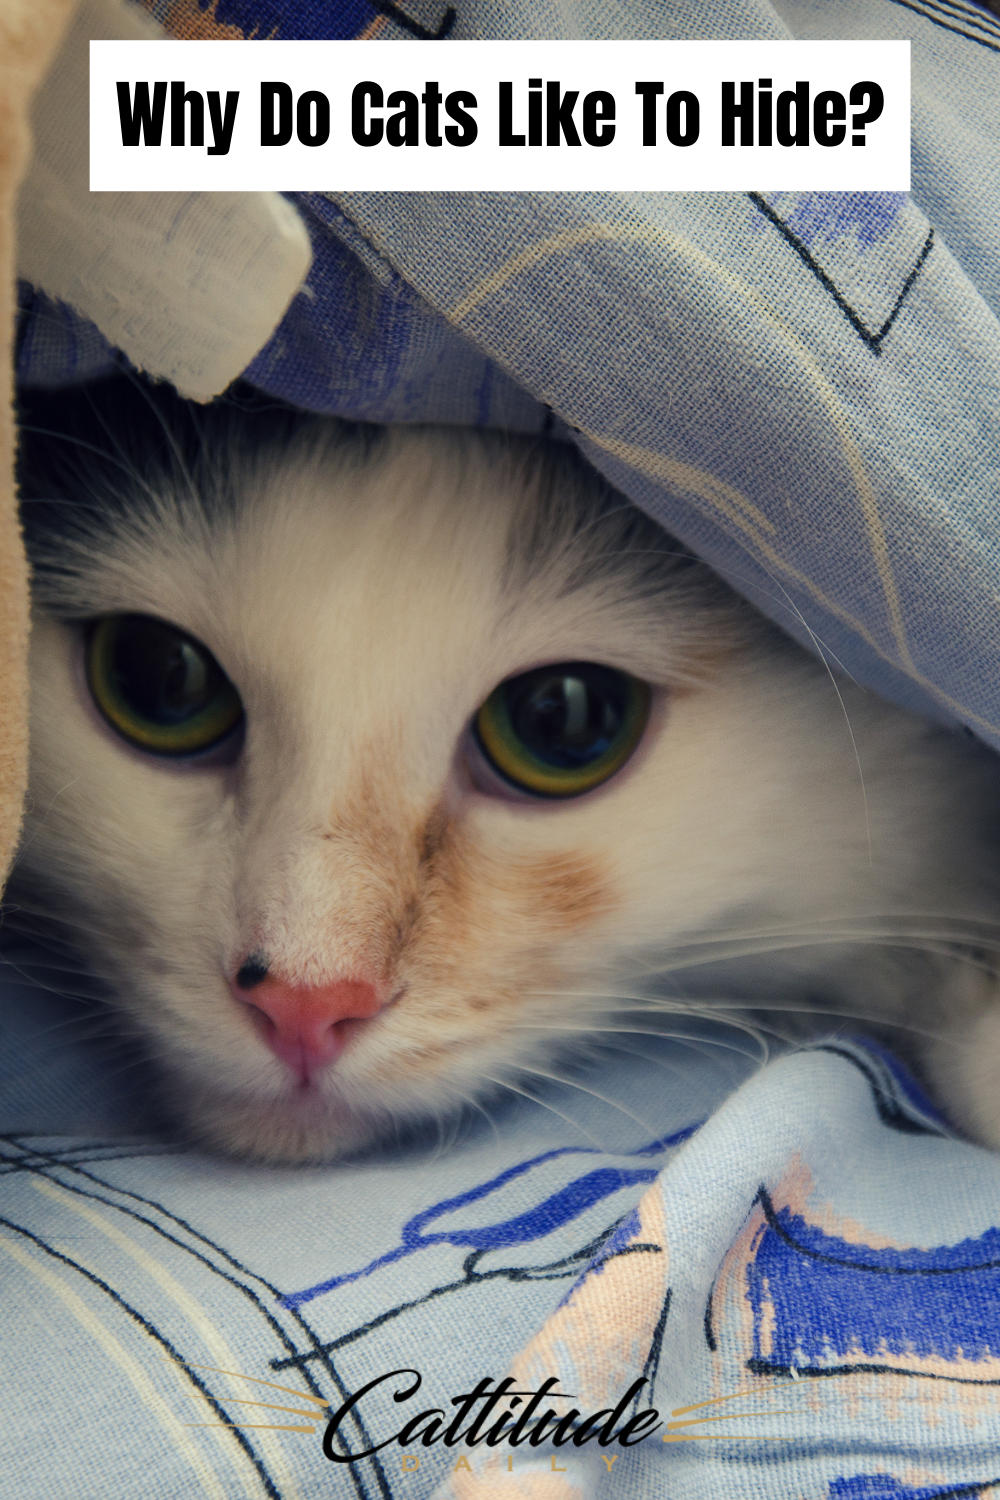 Why Do Cats Like To Hide In 2020 Cats Cat Behavior Cat Facts